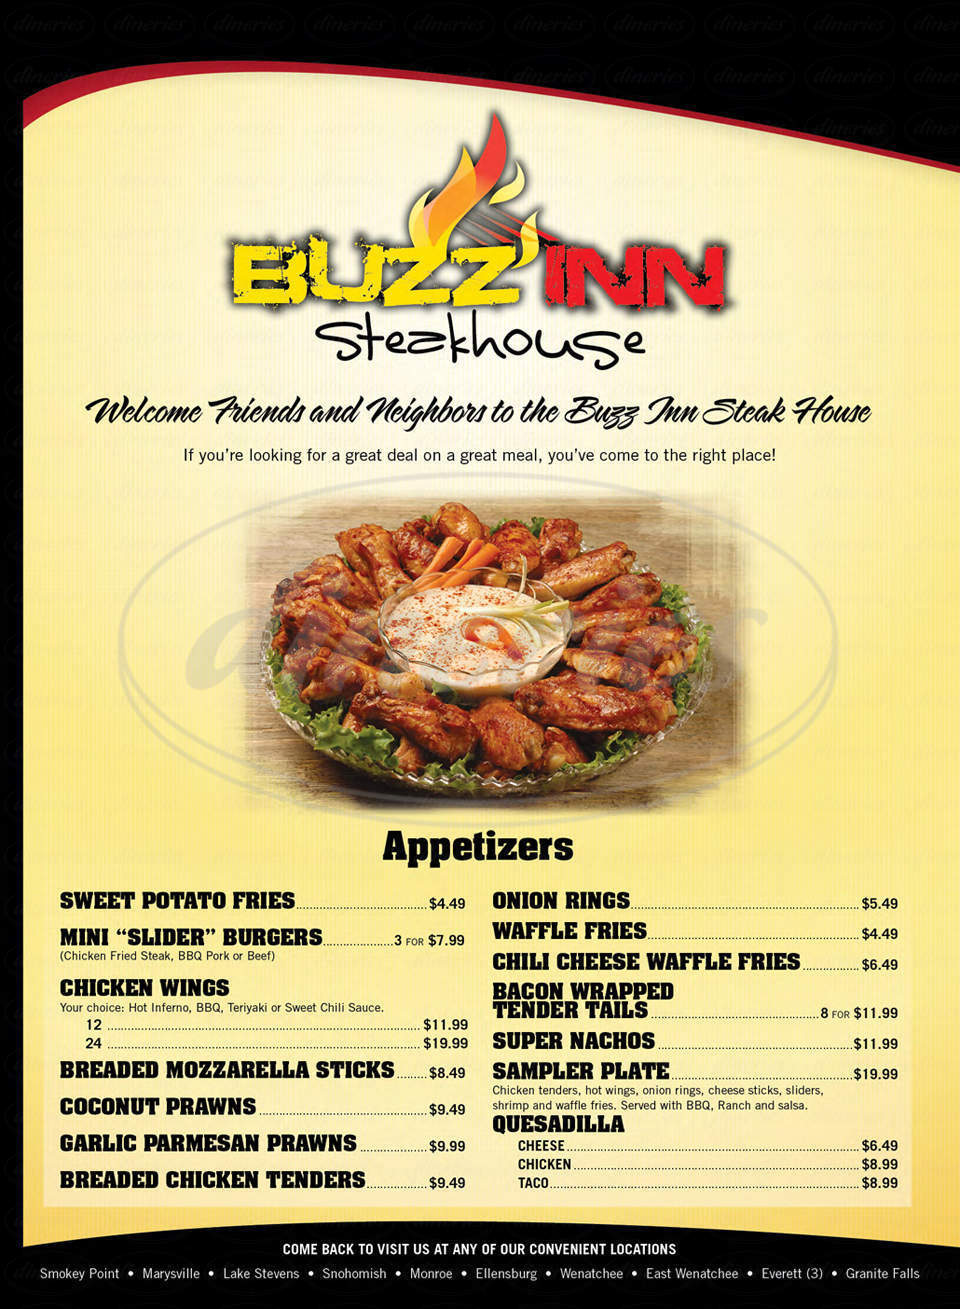 menu for Buzz Inn Steakhouse & Casino